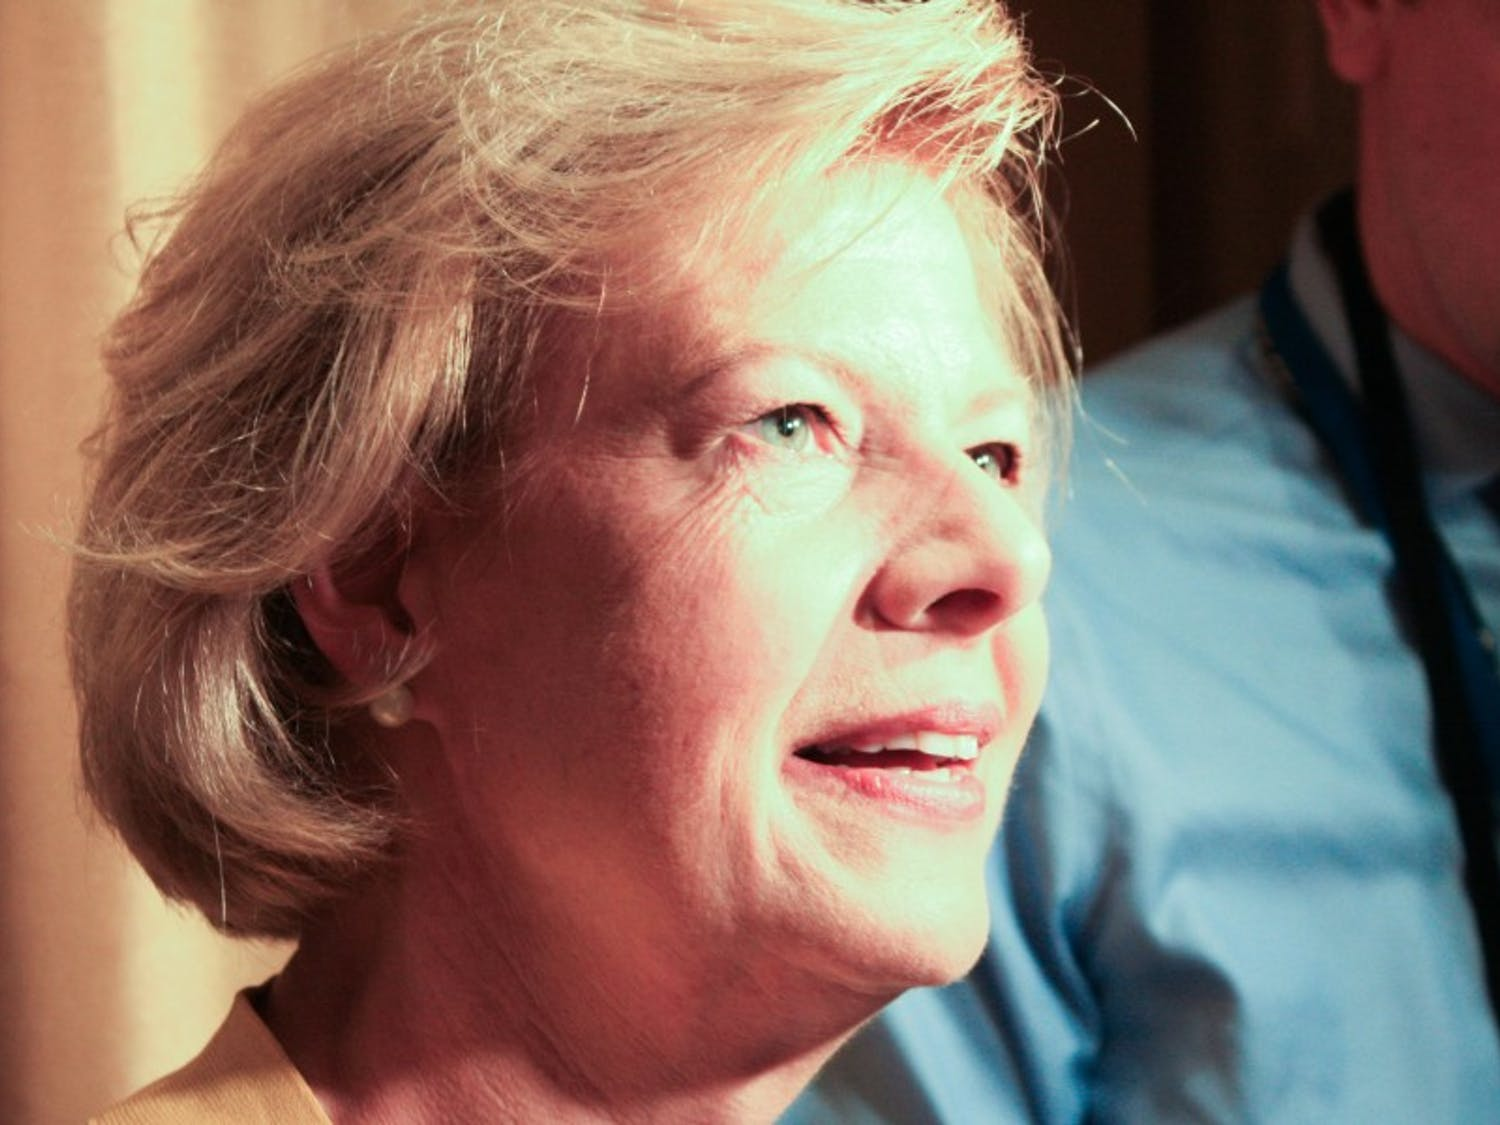 U.S. Sen. Tammy Baldwin, D-Wis., says Senate Democrats will continue to push for student debt relief in the next session.